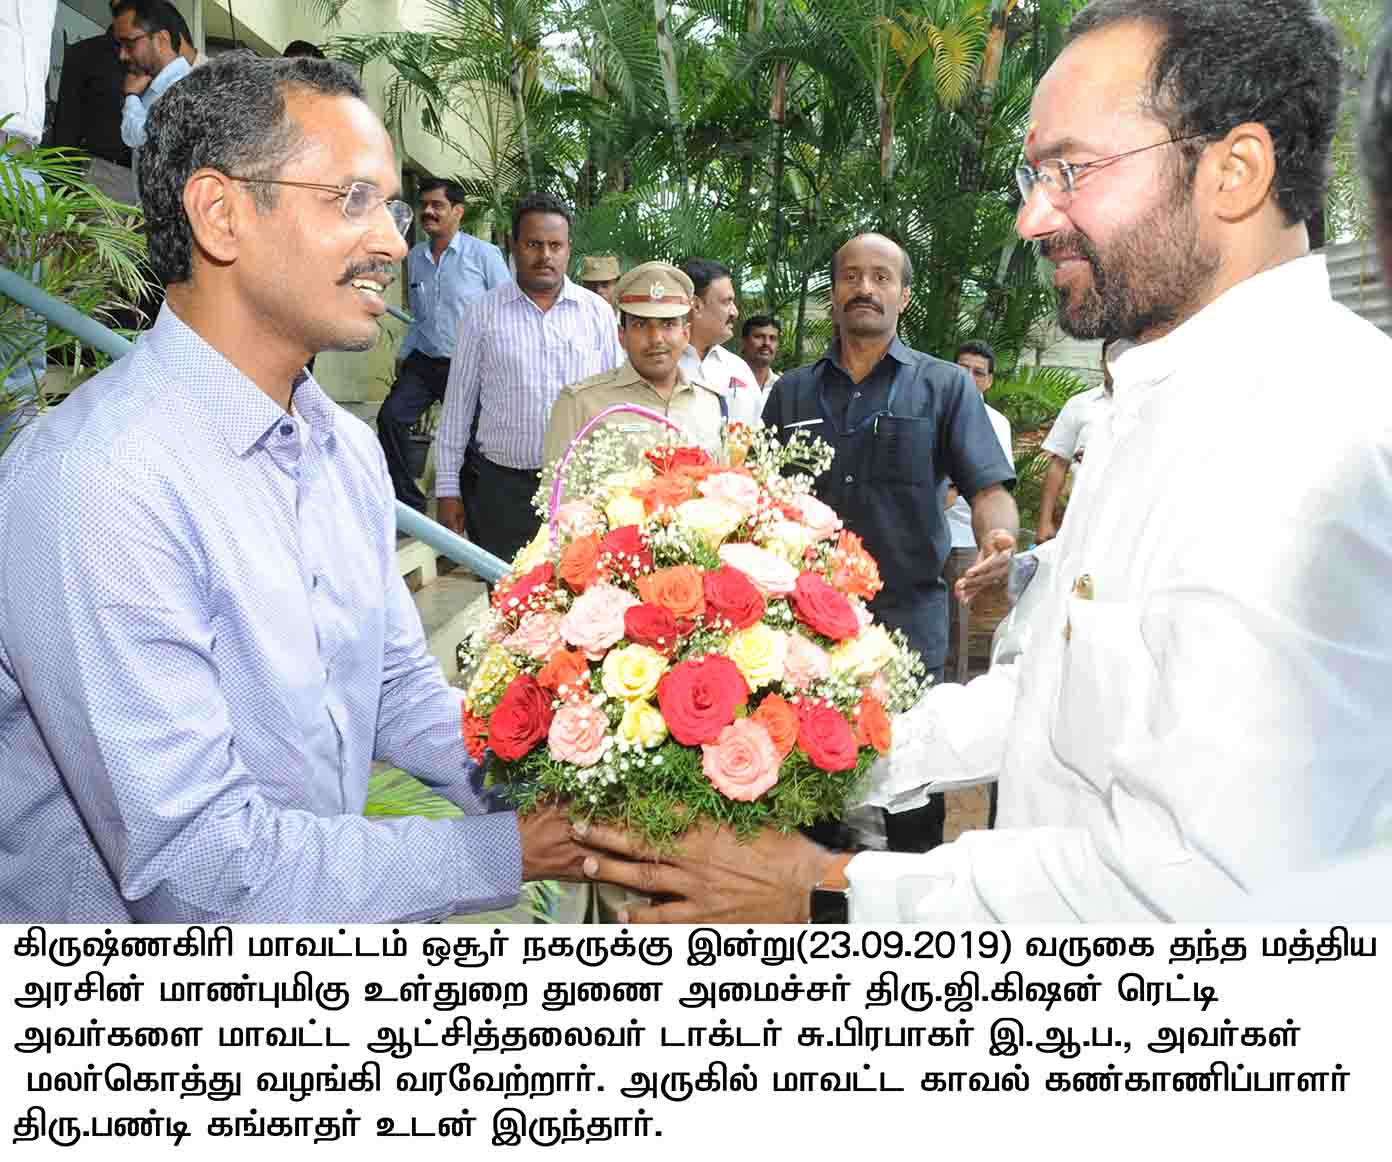 district collector welcomes Hon'ble state minister of home affairs